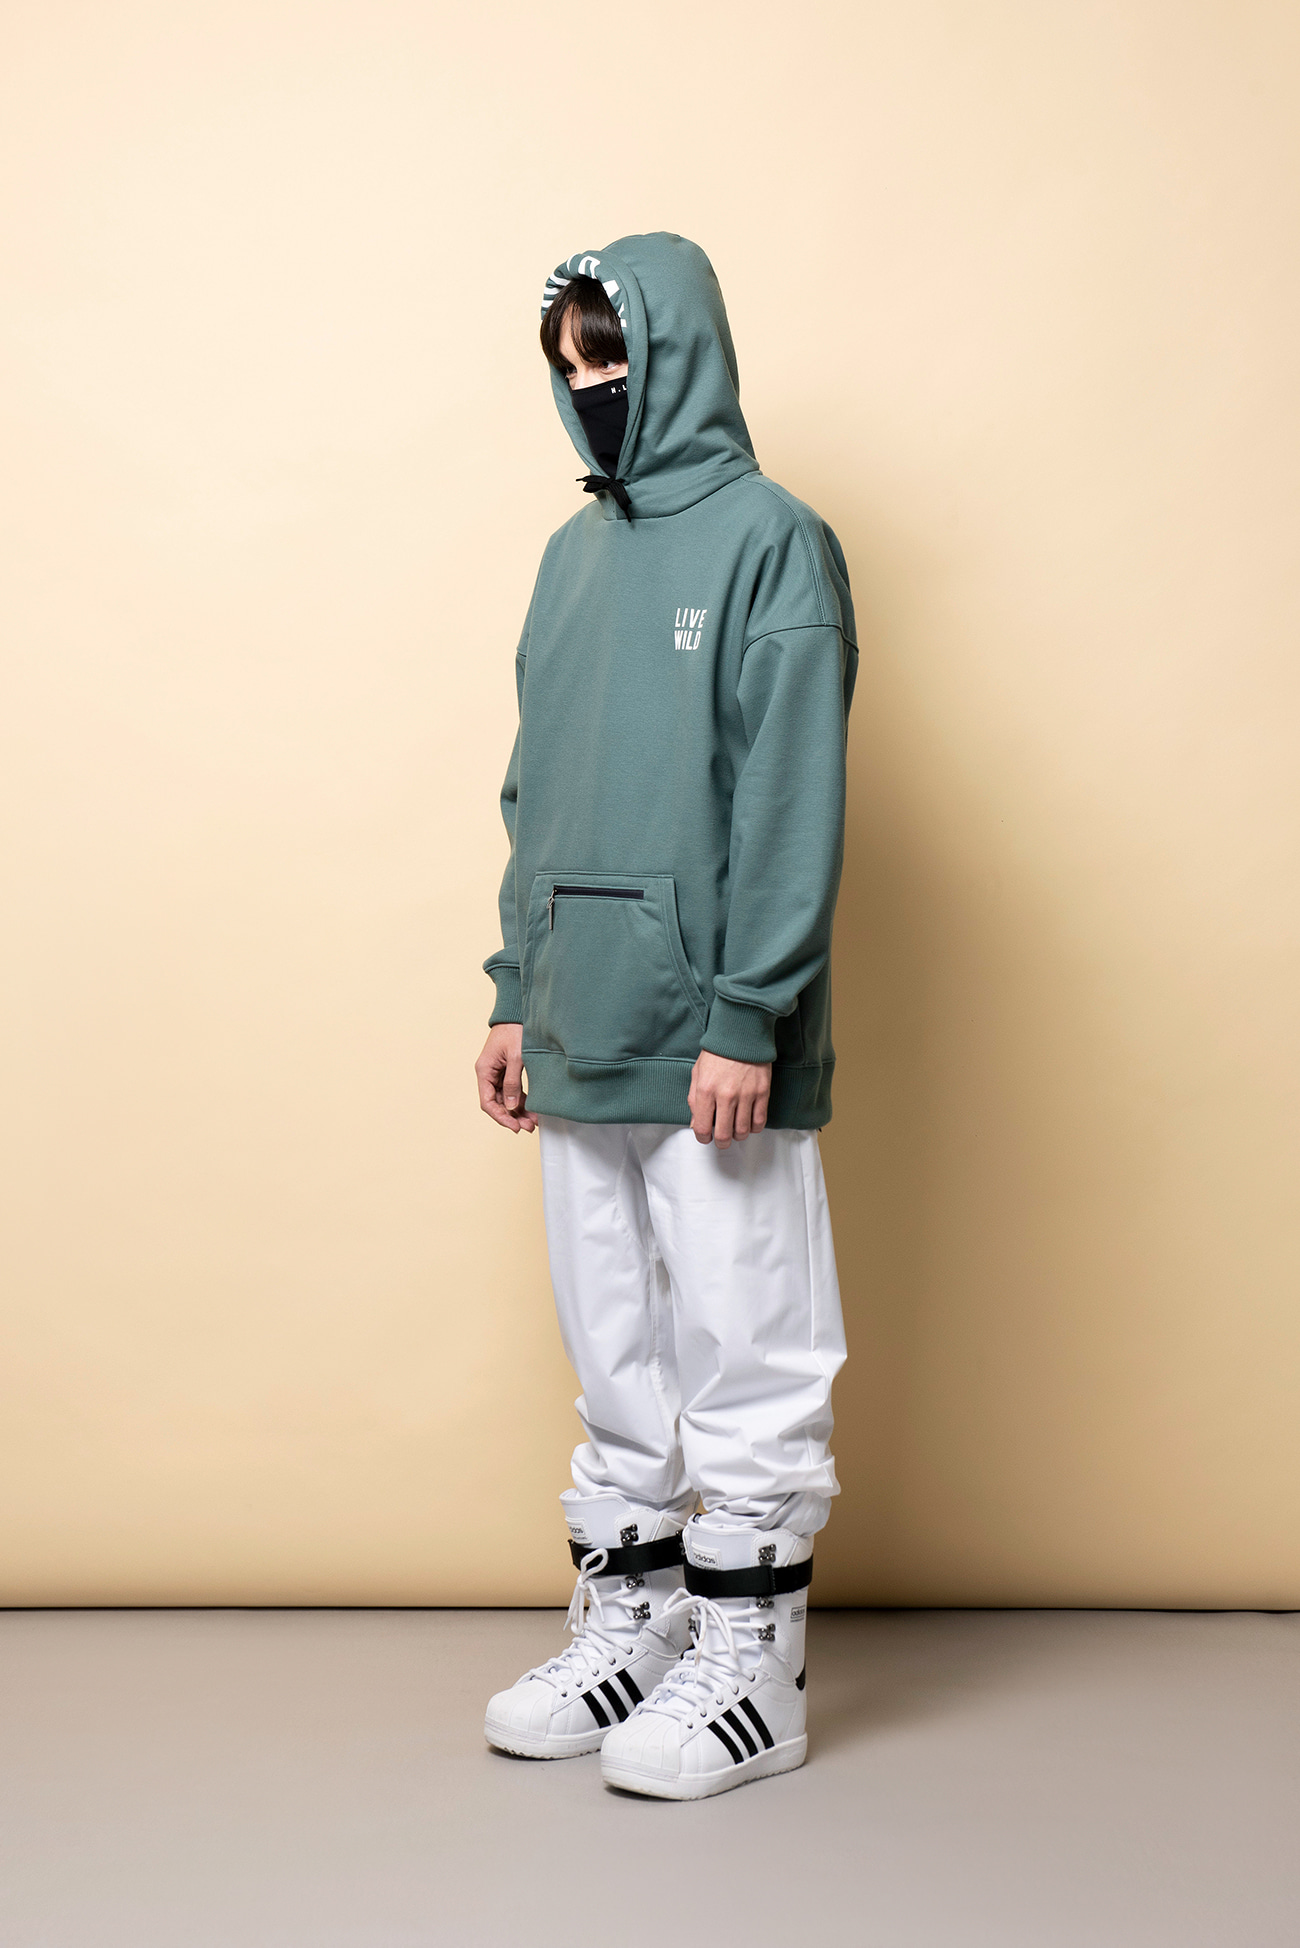 LIVING waterproof hoodie[방수후드] - bluegreenHOLIDAY OUTERWEAR